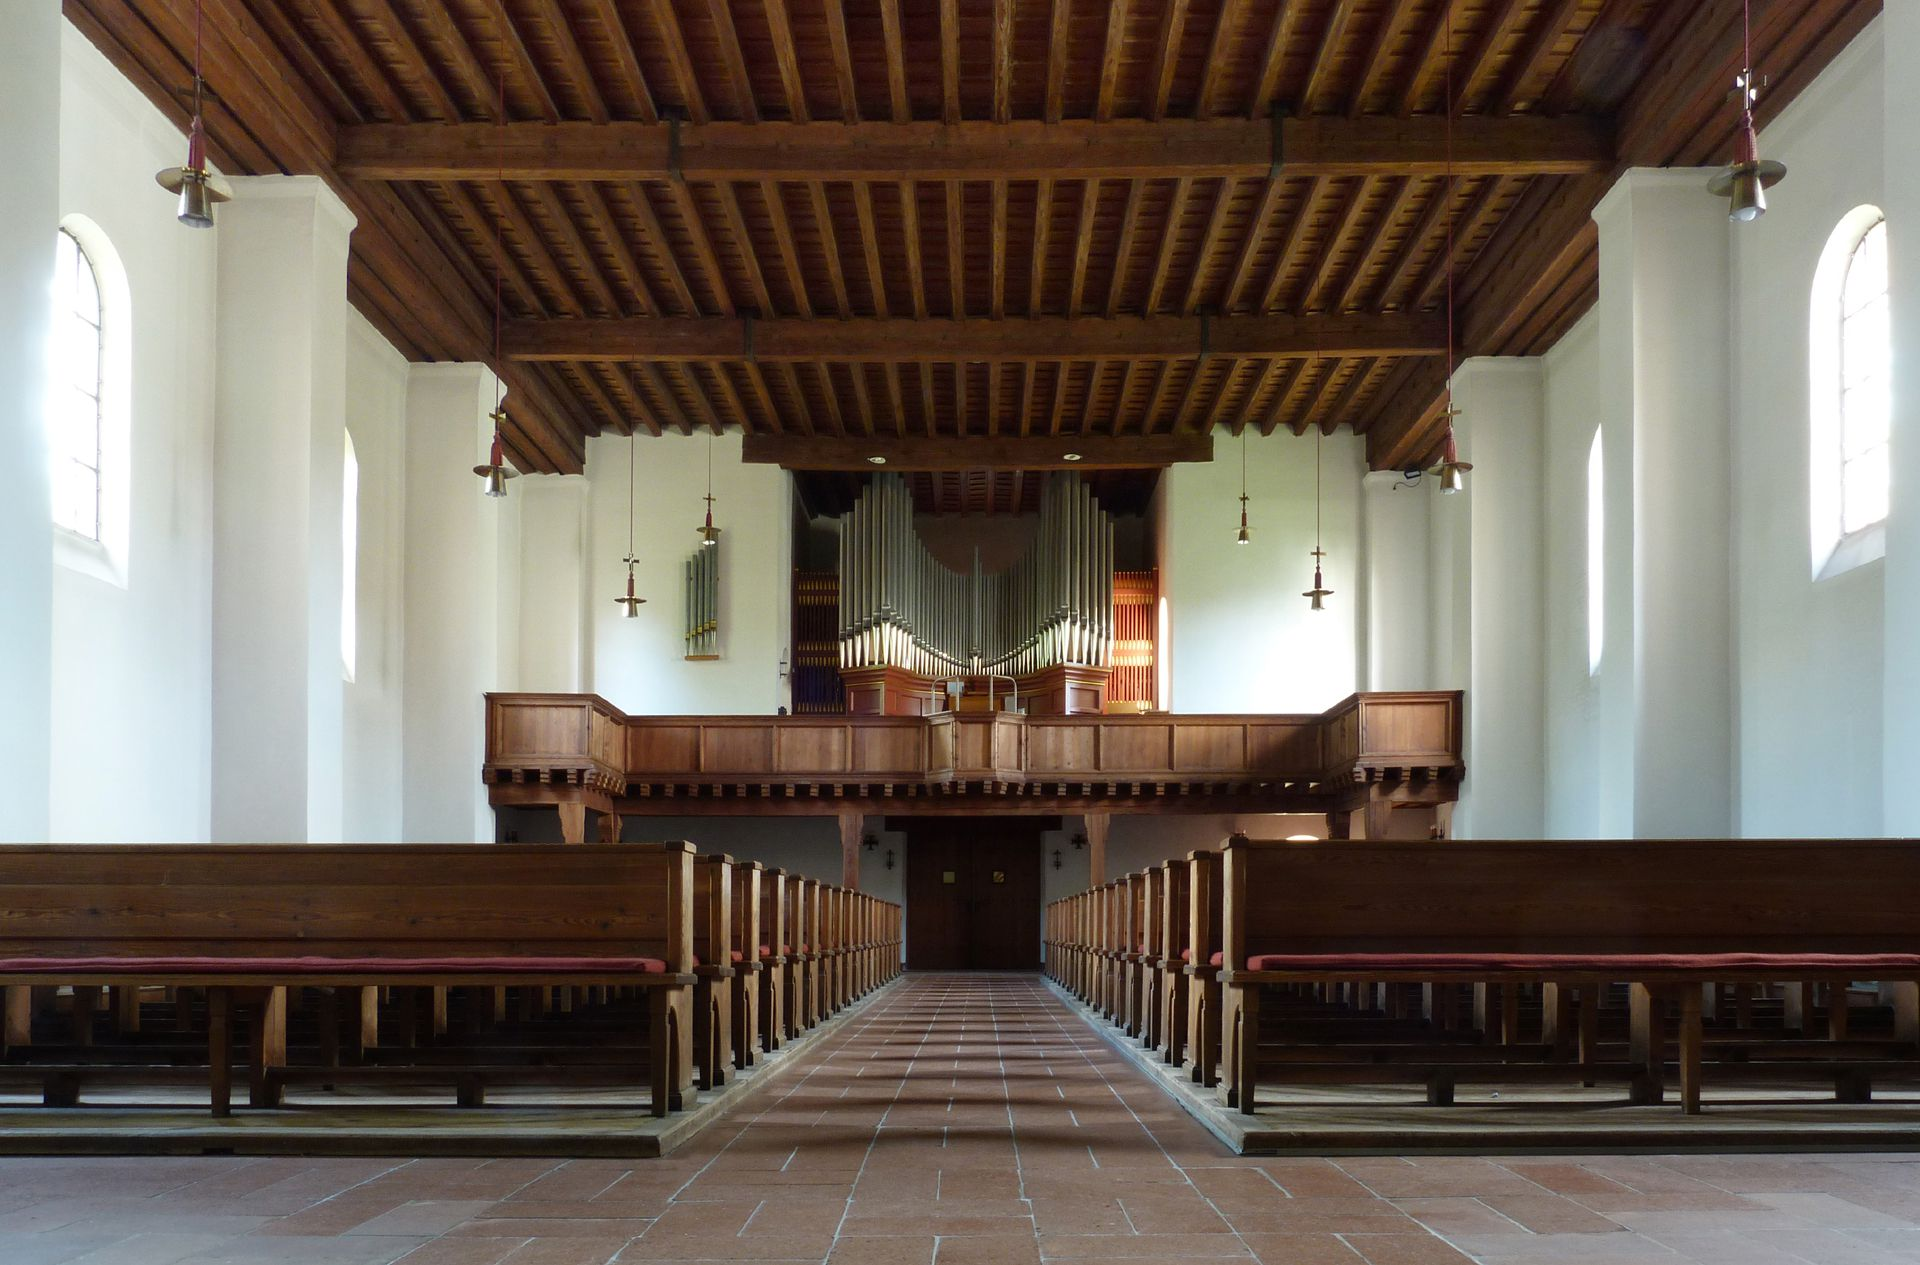 Melanchthon-Church Interior, view to the entrance